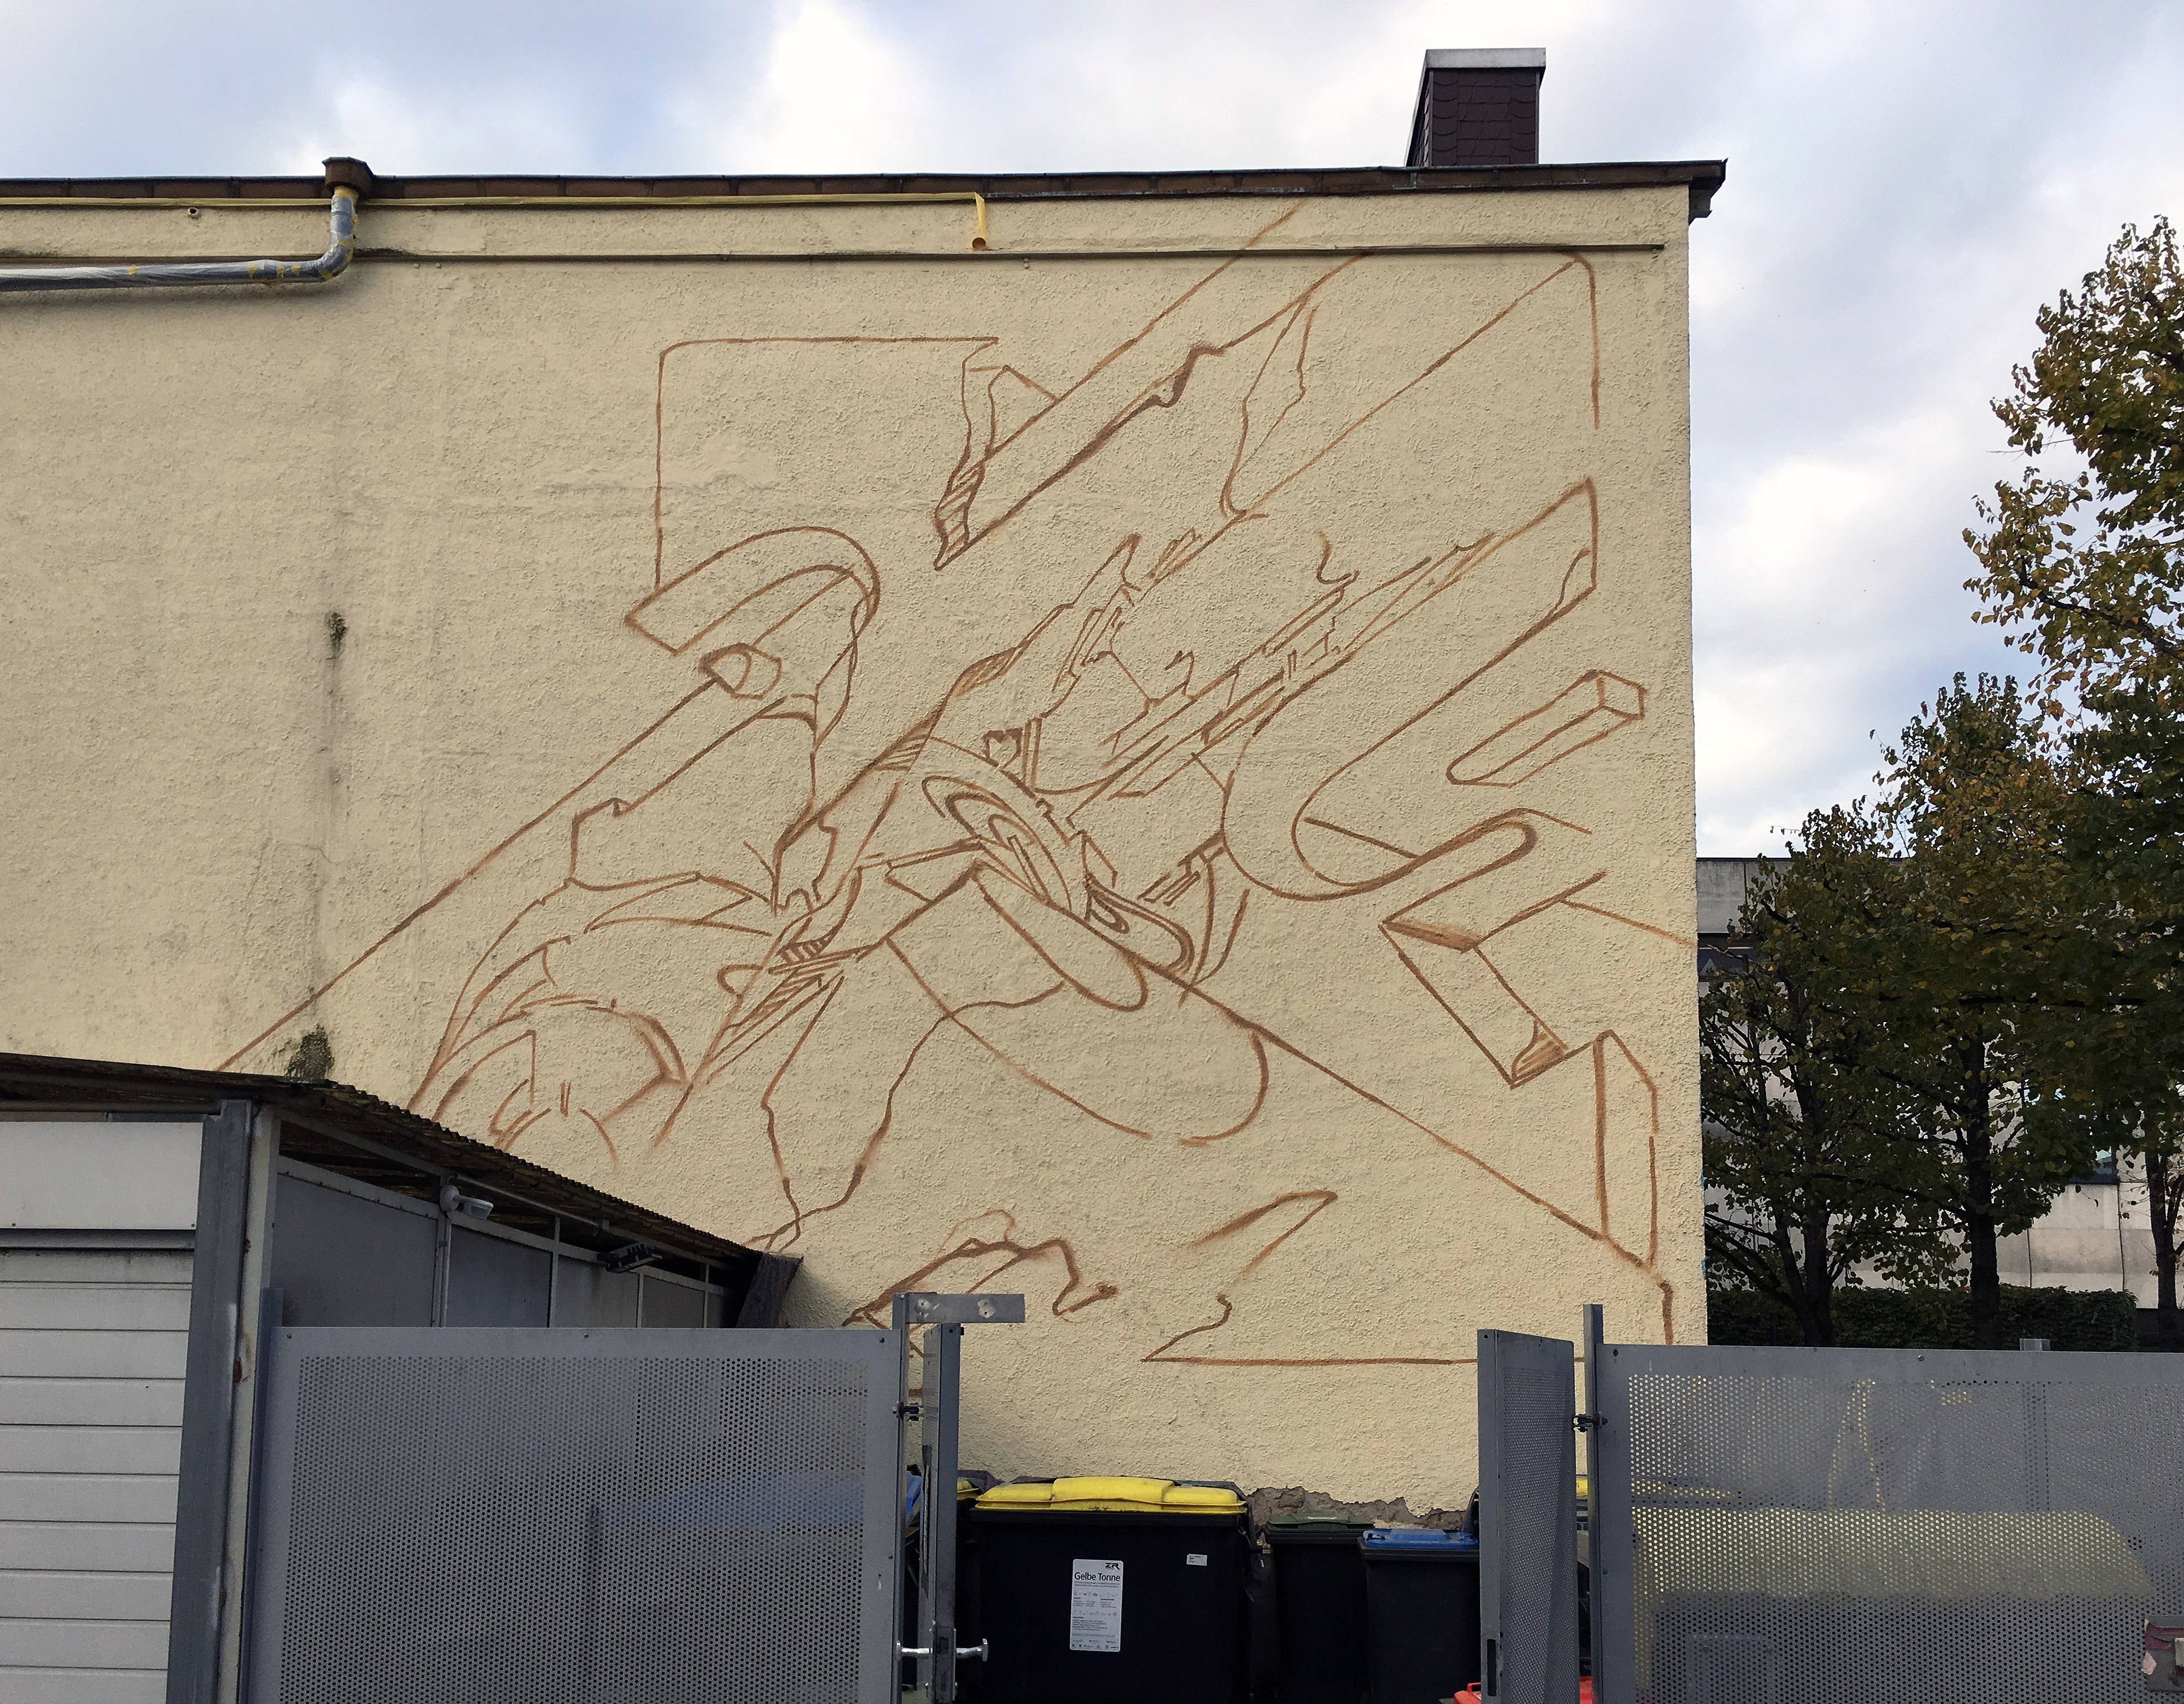 A work by Does - River tales giessen germany mural 7